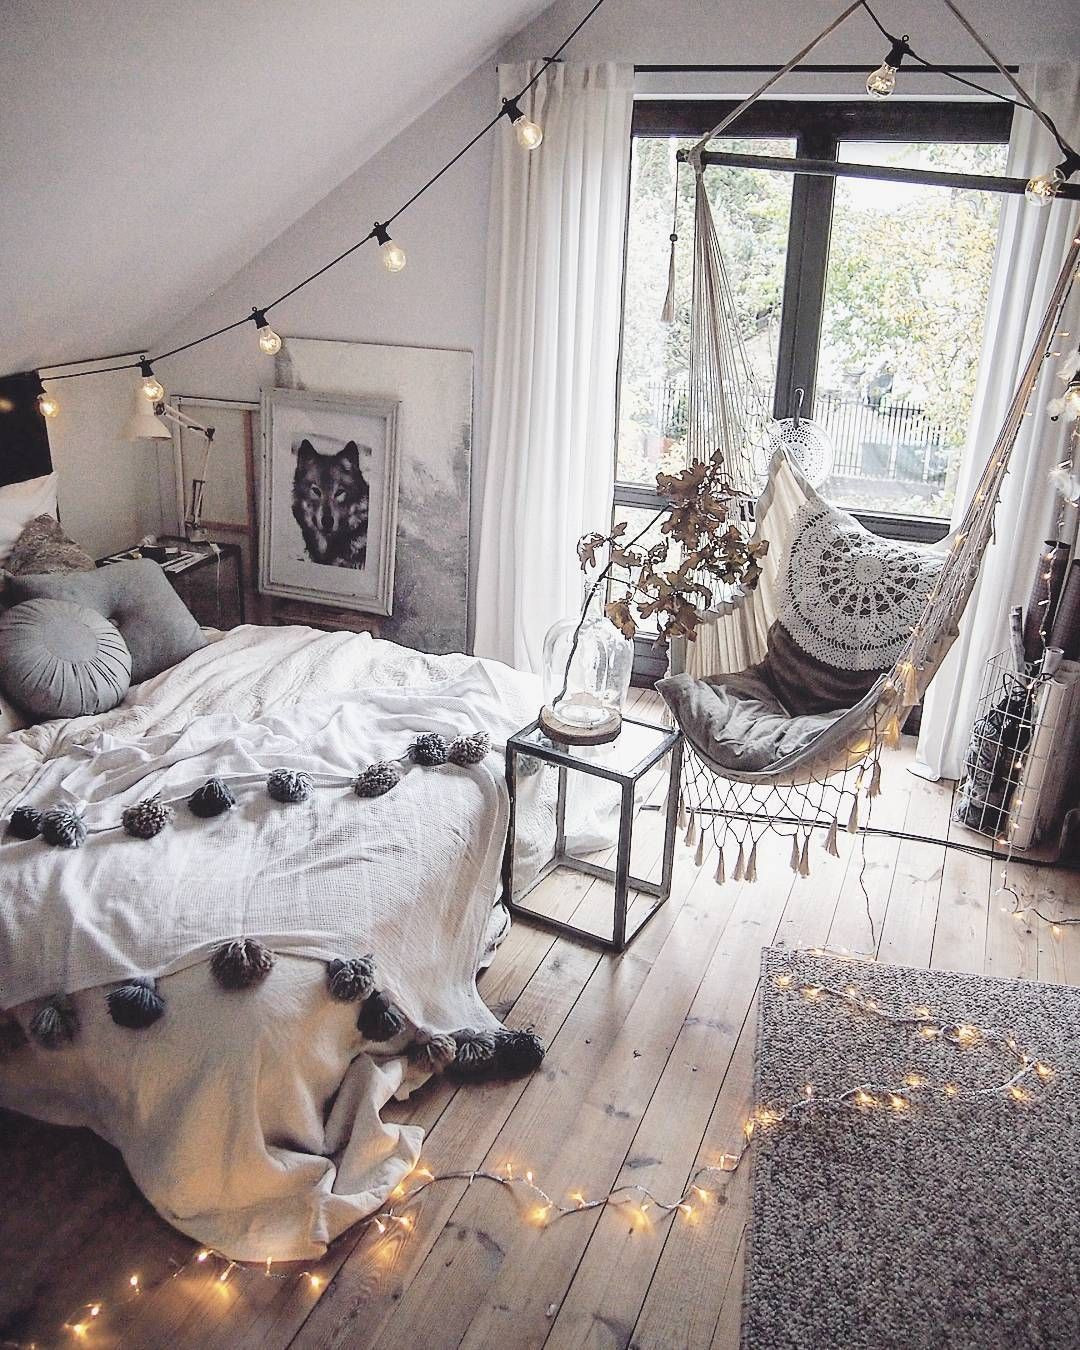 Inrichting Kamer Ideeen.Aubrianneke Interior In 2019 Bedroom Decor Room Decor En